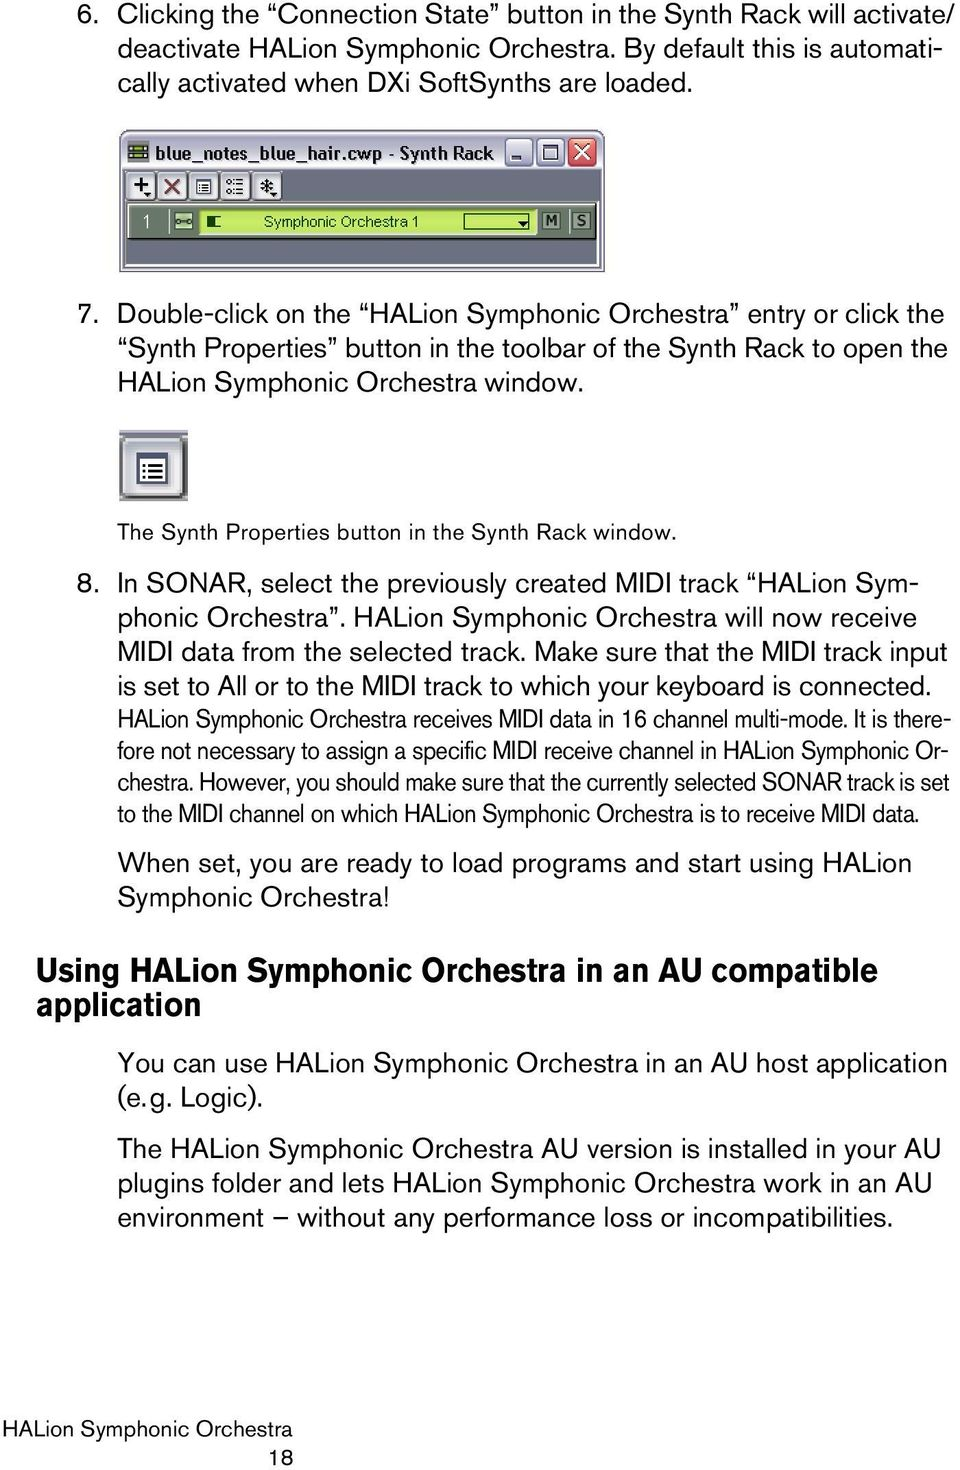 In SONAR, select the previously created MIDI track HALion Symphonic Orchestra. will now receive MIDI data from the selected track.